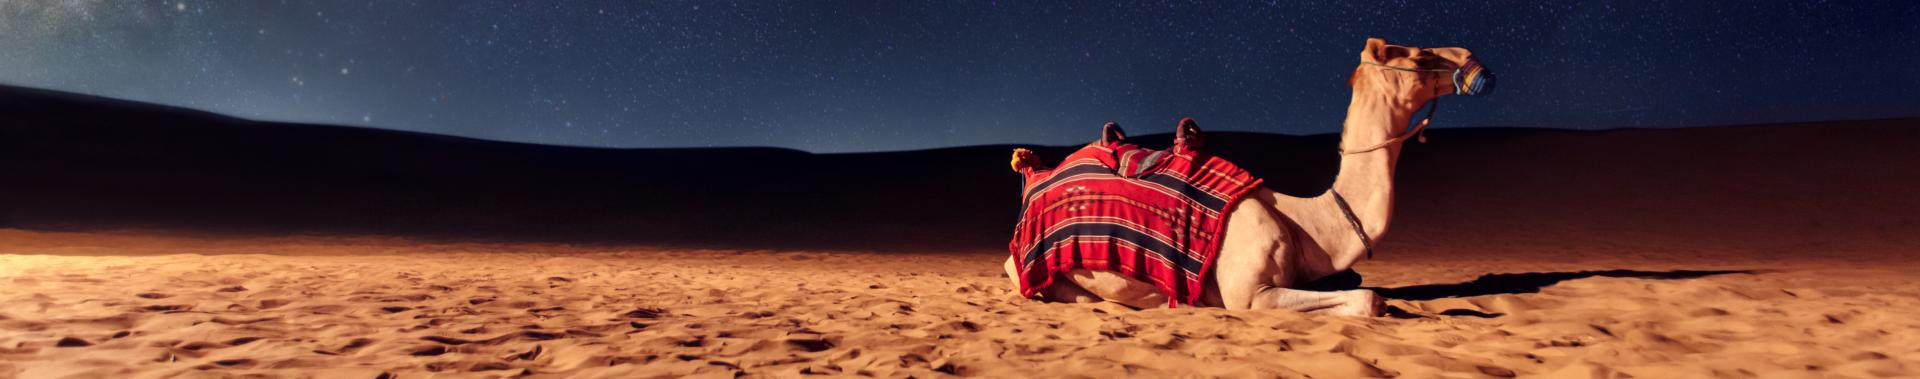 Camel sitting in sand against night sky.